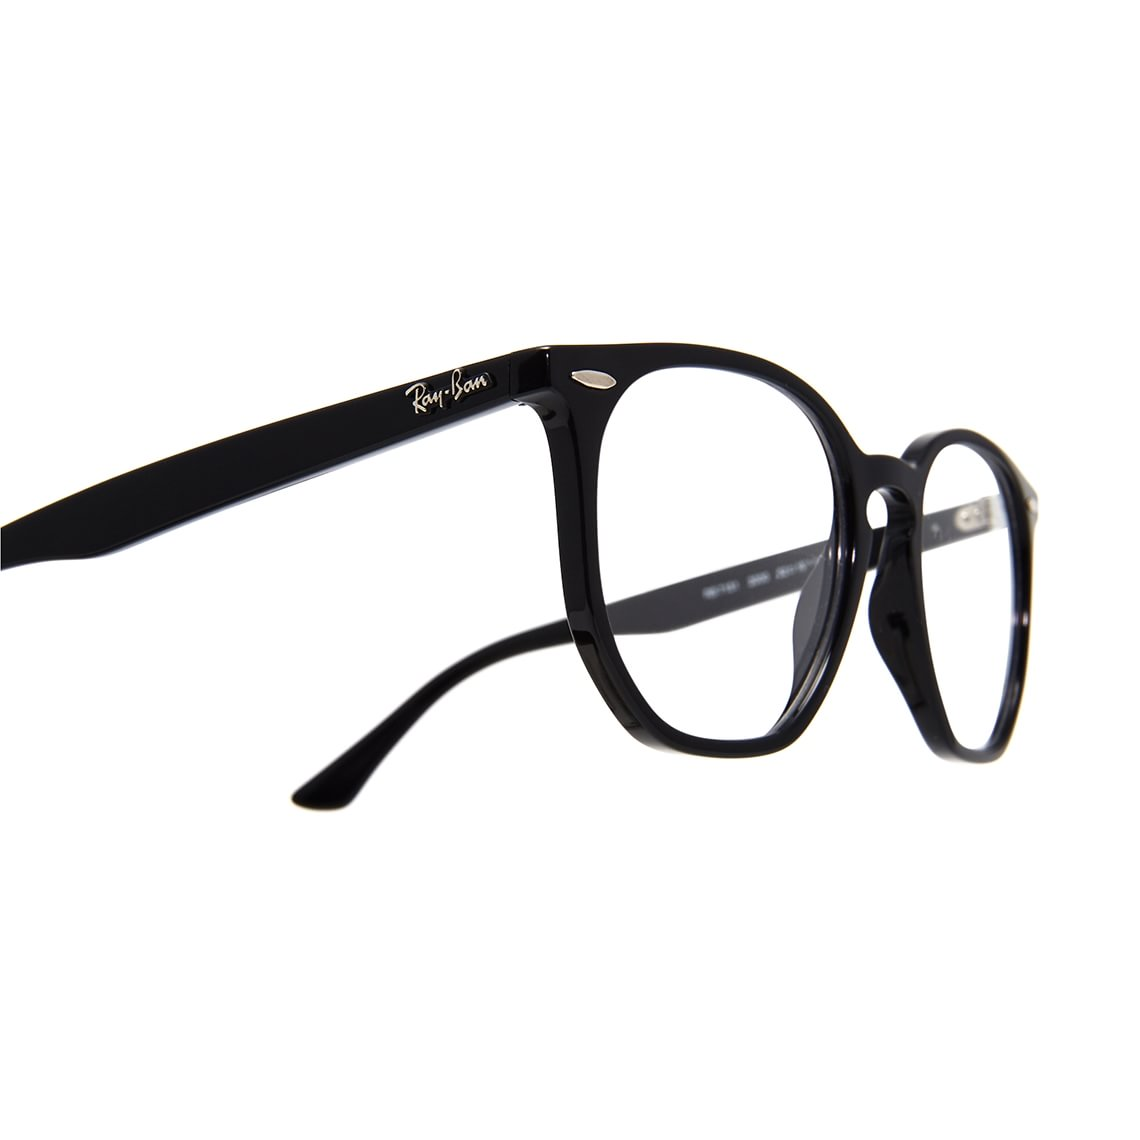 Ray-Ban Hexagonal Optics RX7151 2000 5219